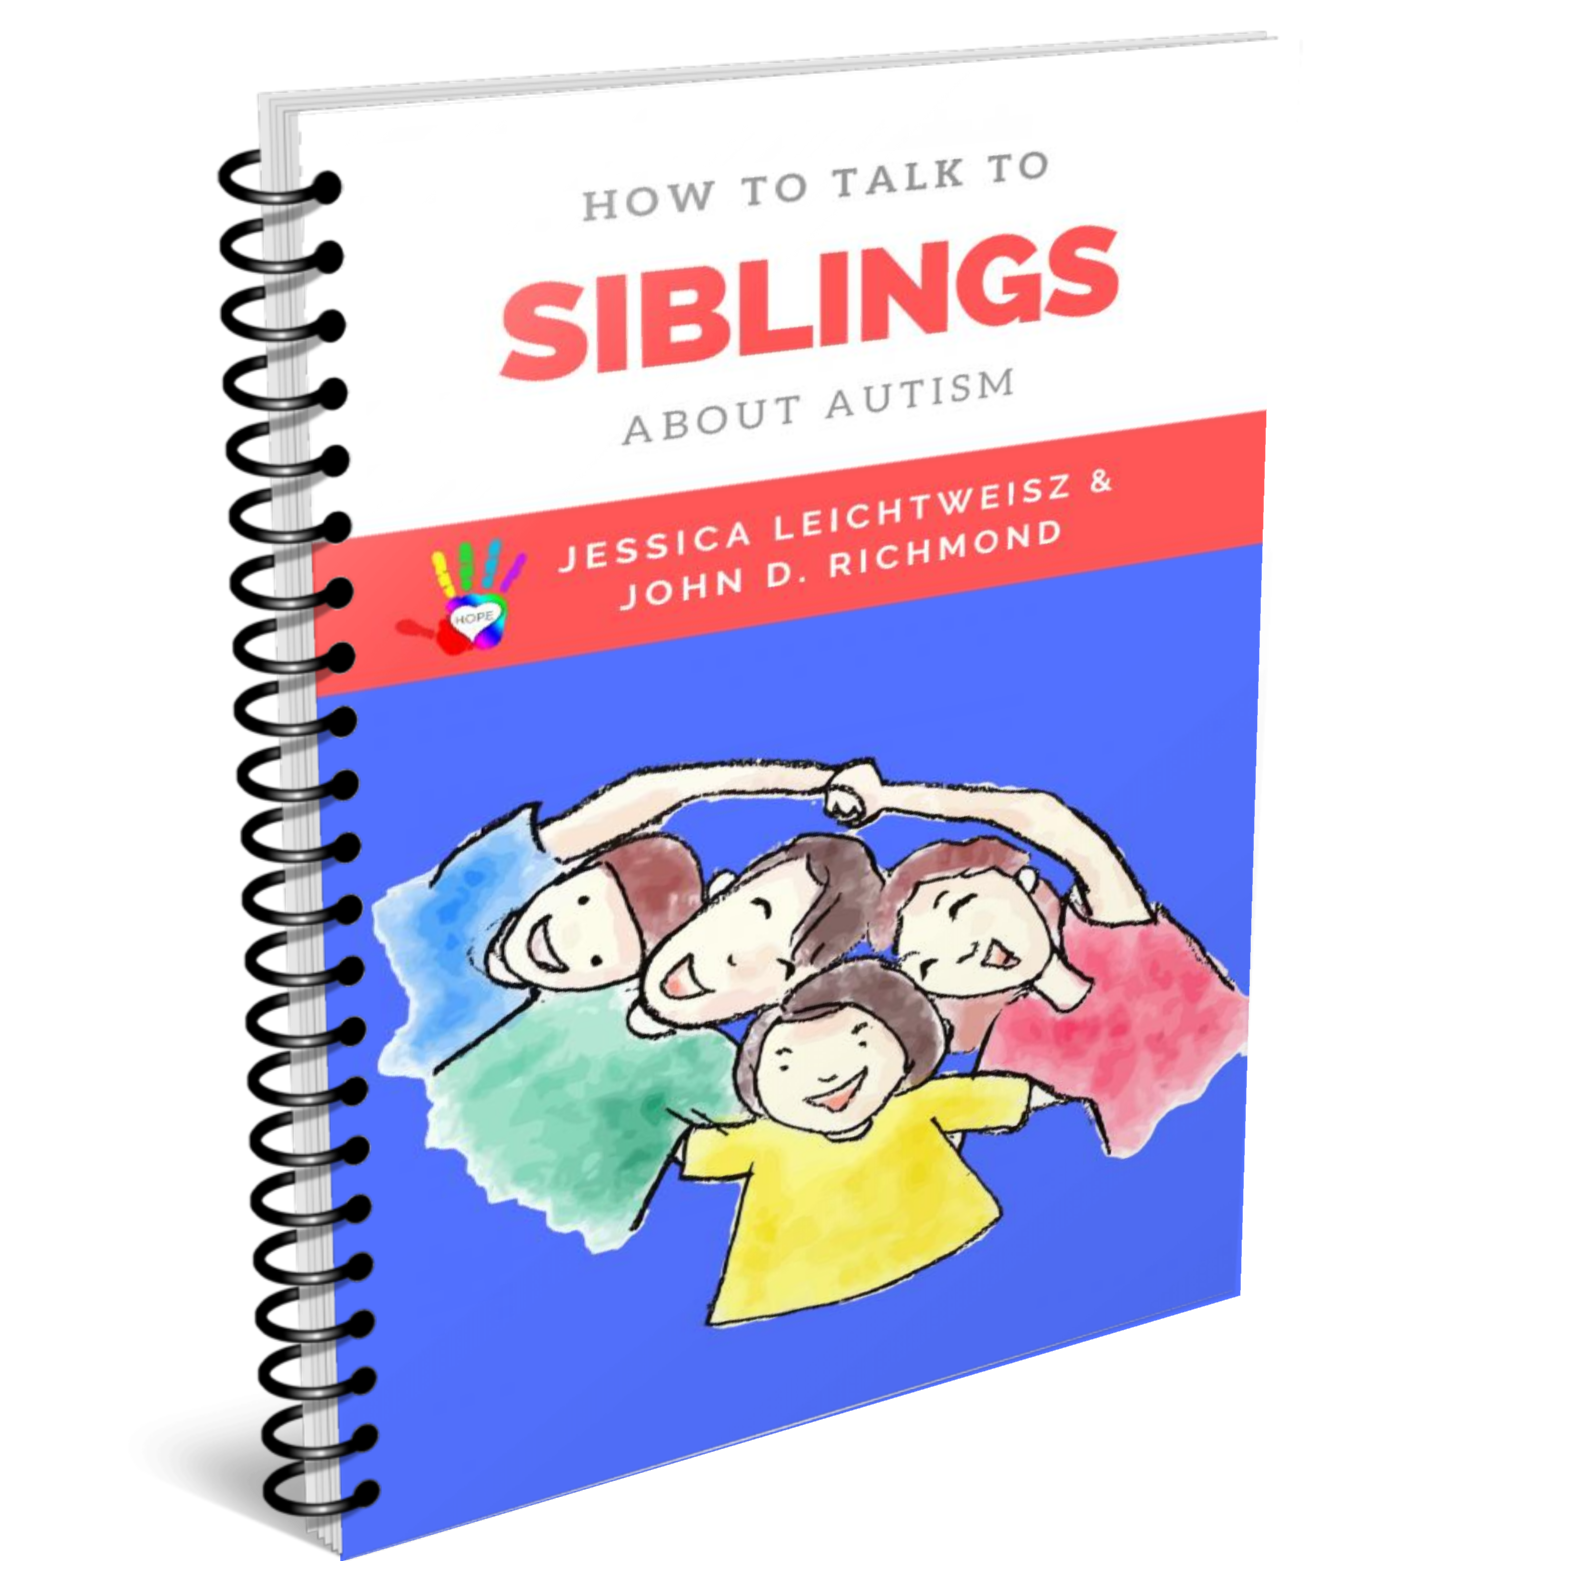 How to Talk to Siblings About Autism